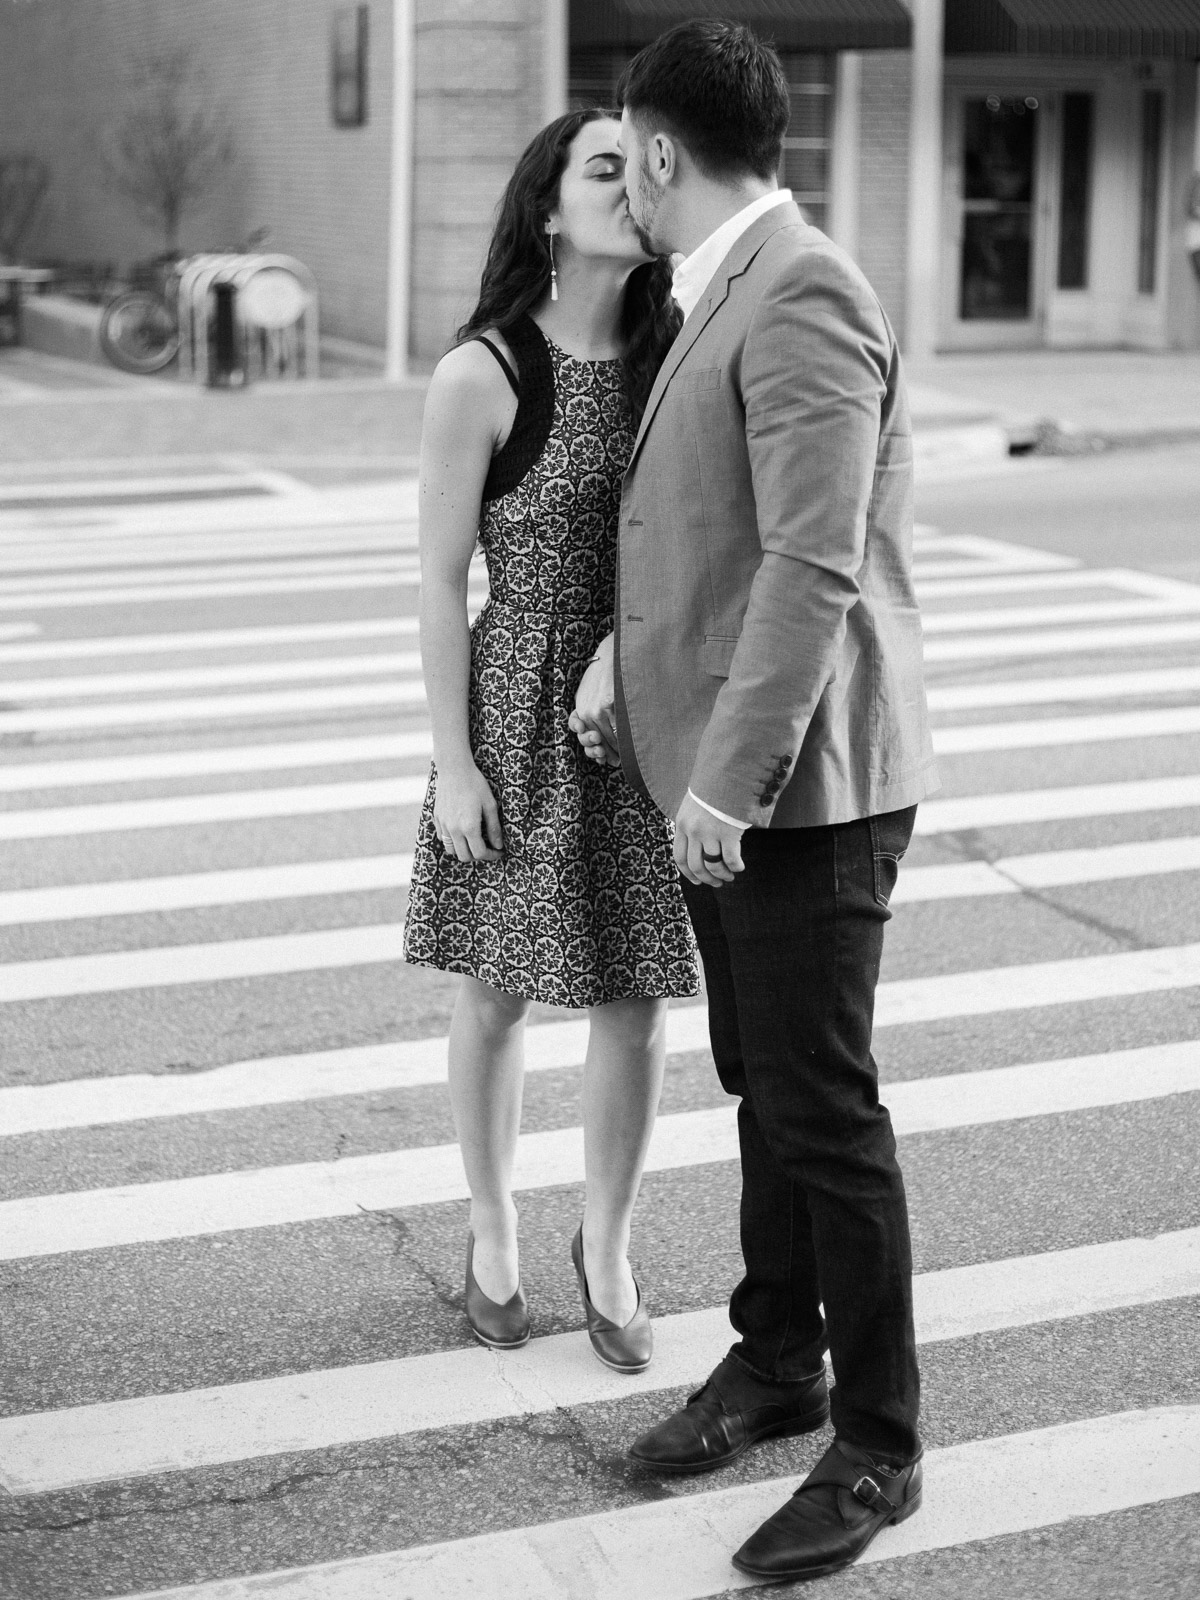 fashion-inspired-couples-photos-12.jpg